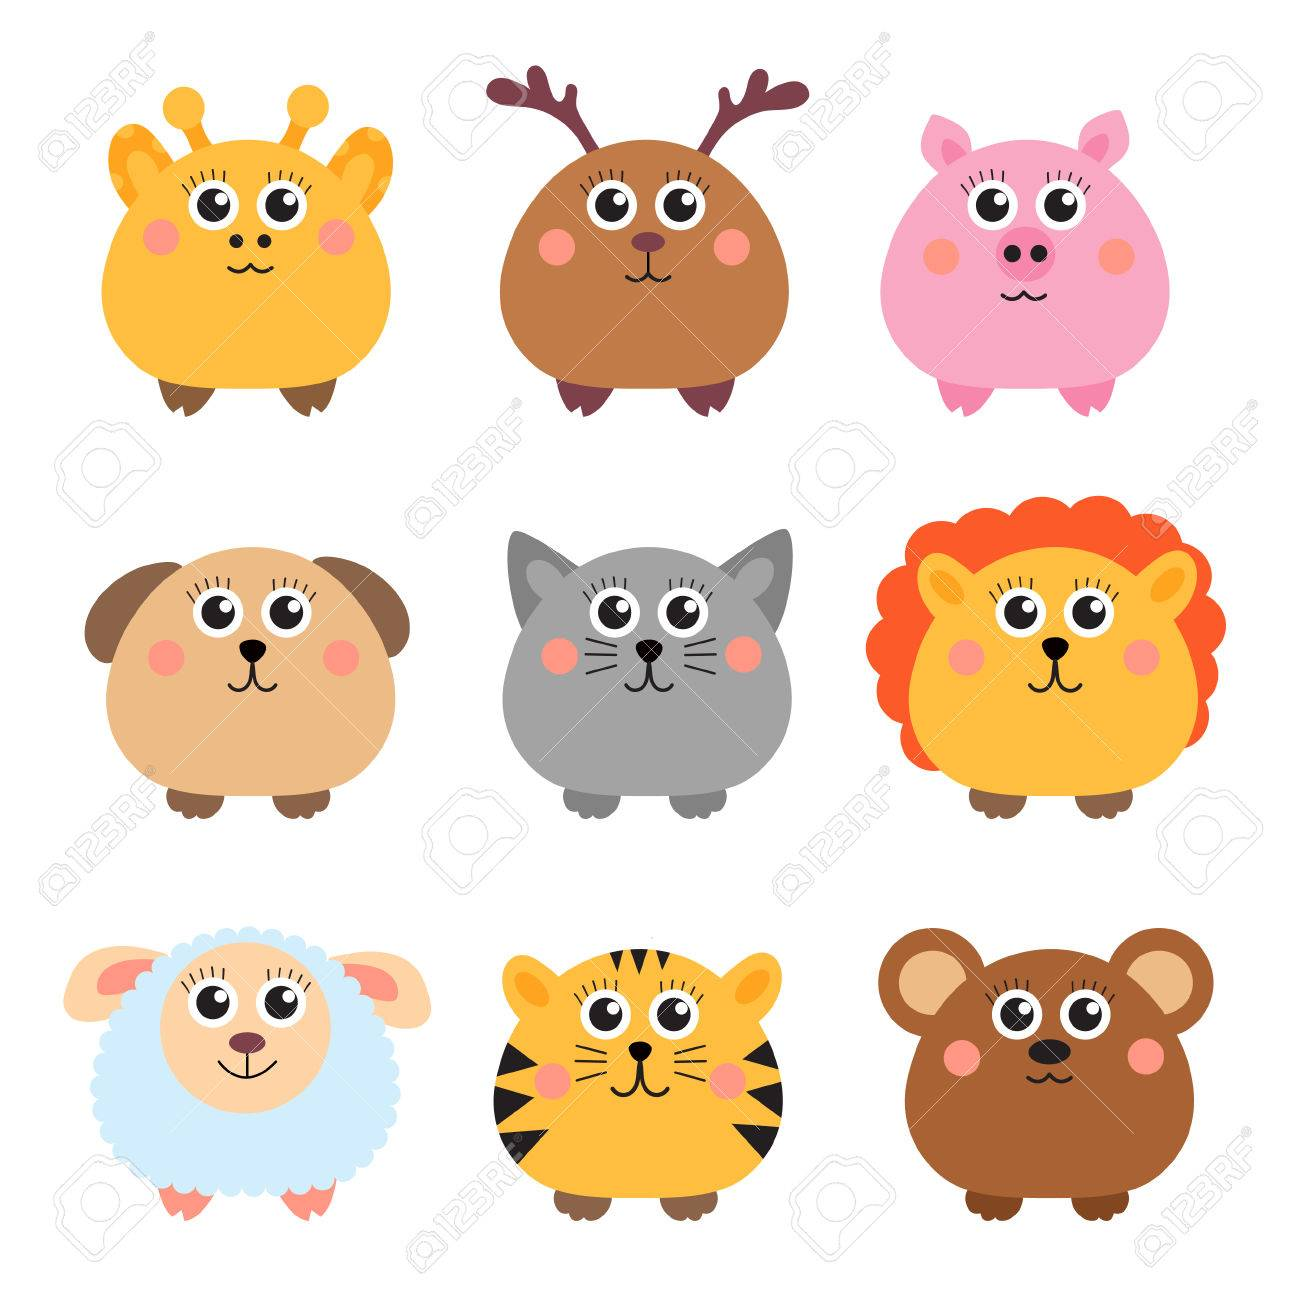 Funny Videos Set Of Cute Animals Rounded Shape Round Animals Vector Illustration Stock Vector 58898814 123rfcom Set Of Cute Animals Rounded Shape Round Animals Vector